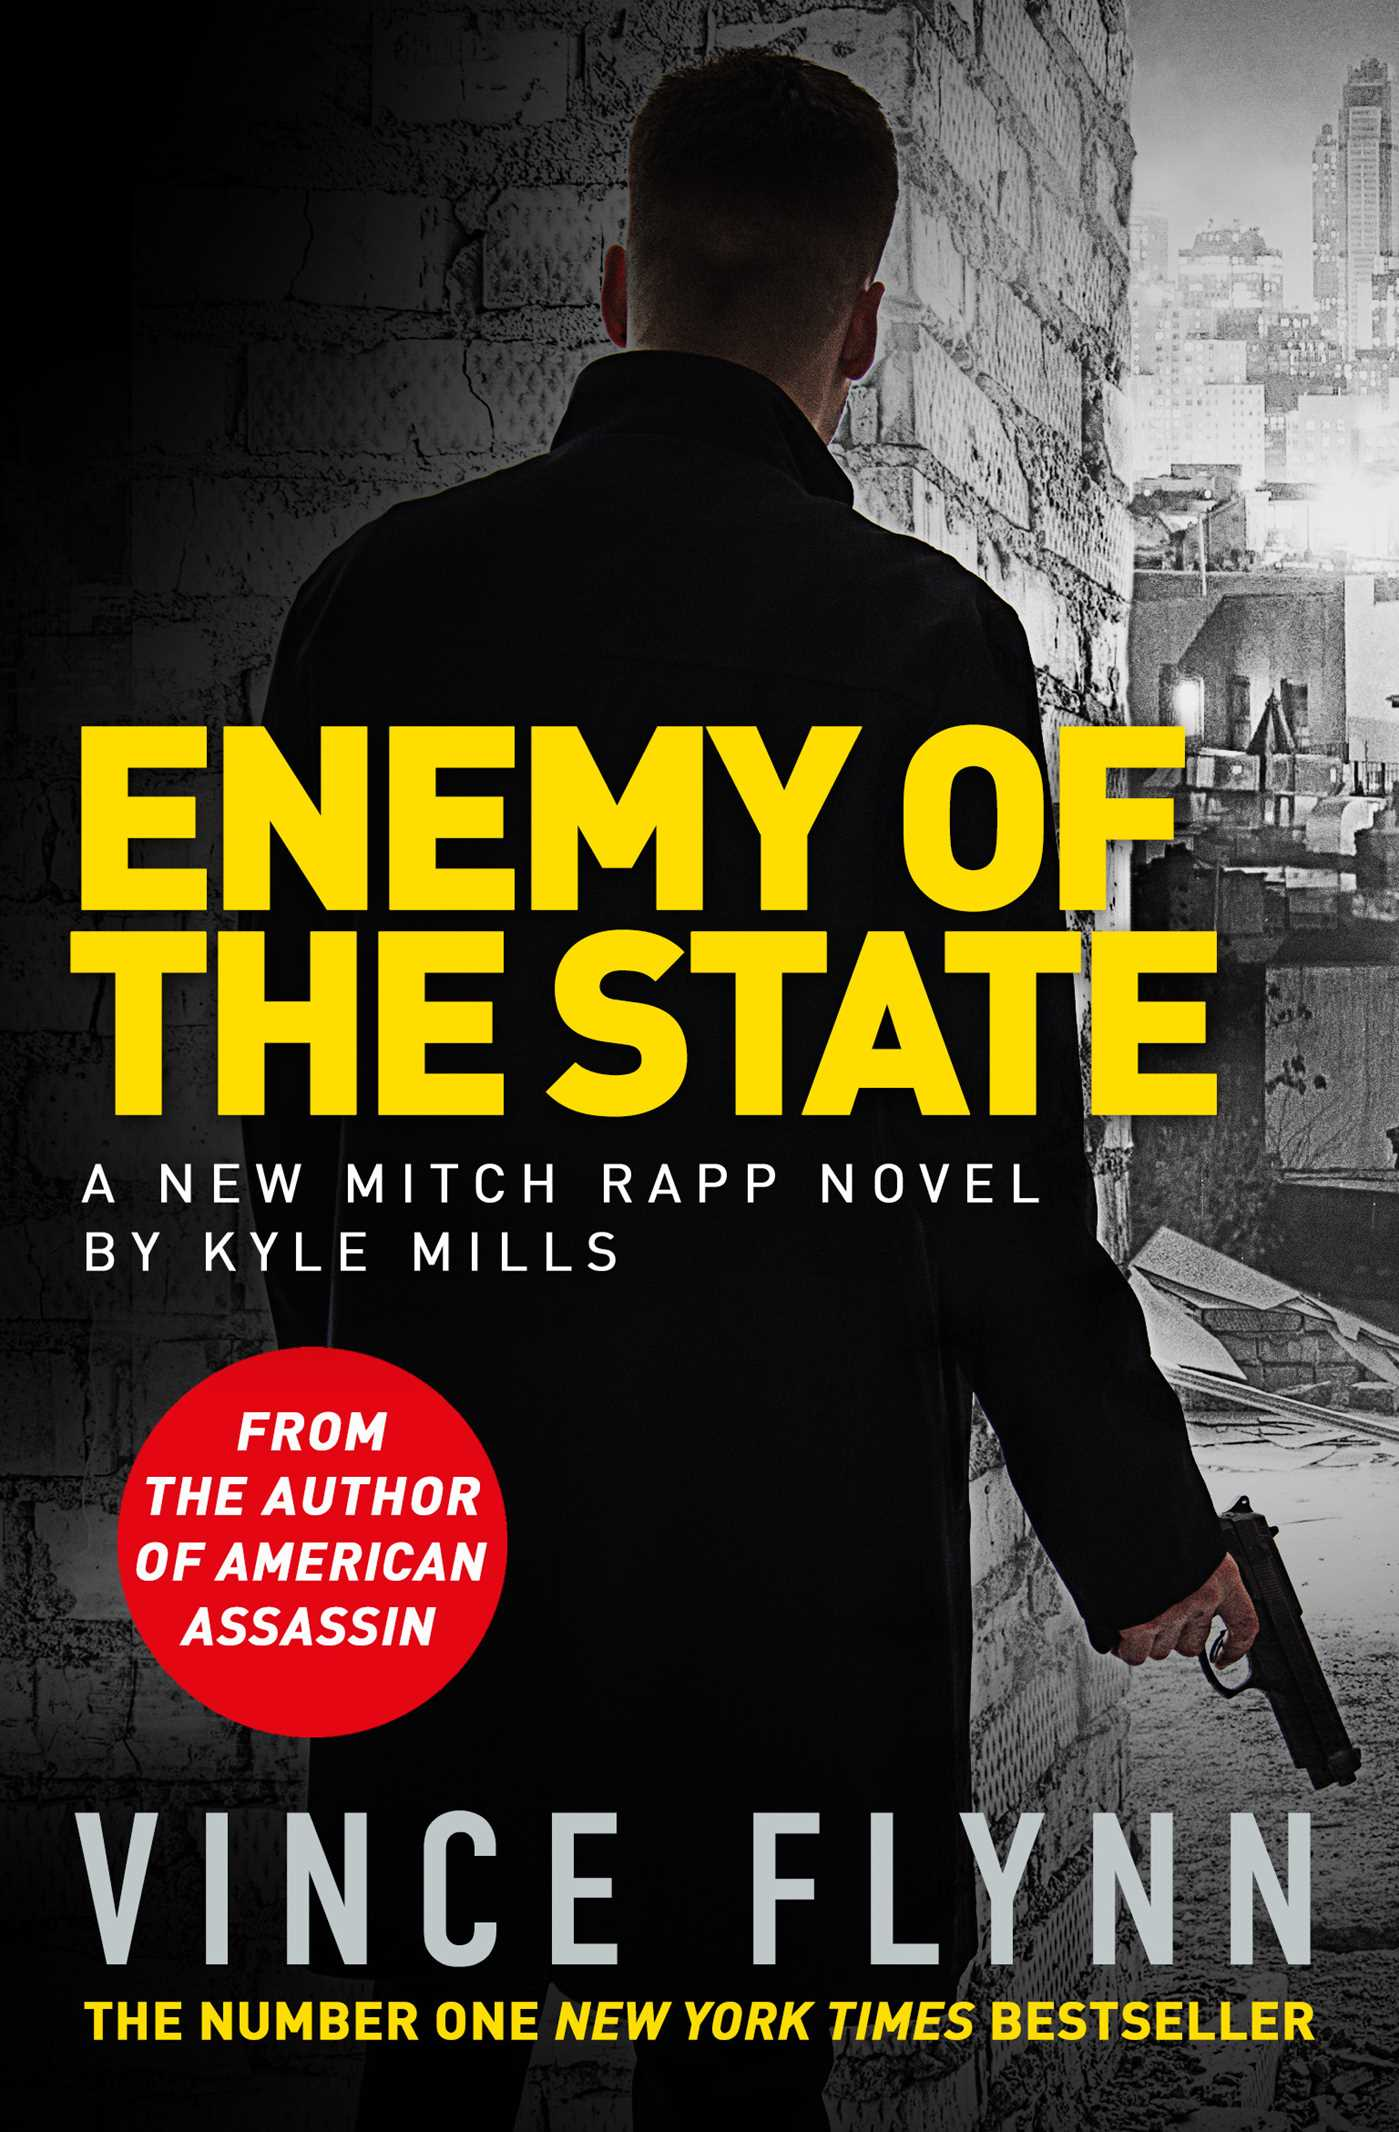 Enemy of the state 9781471157776 hr